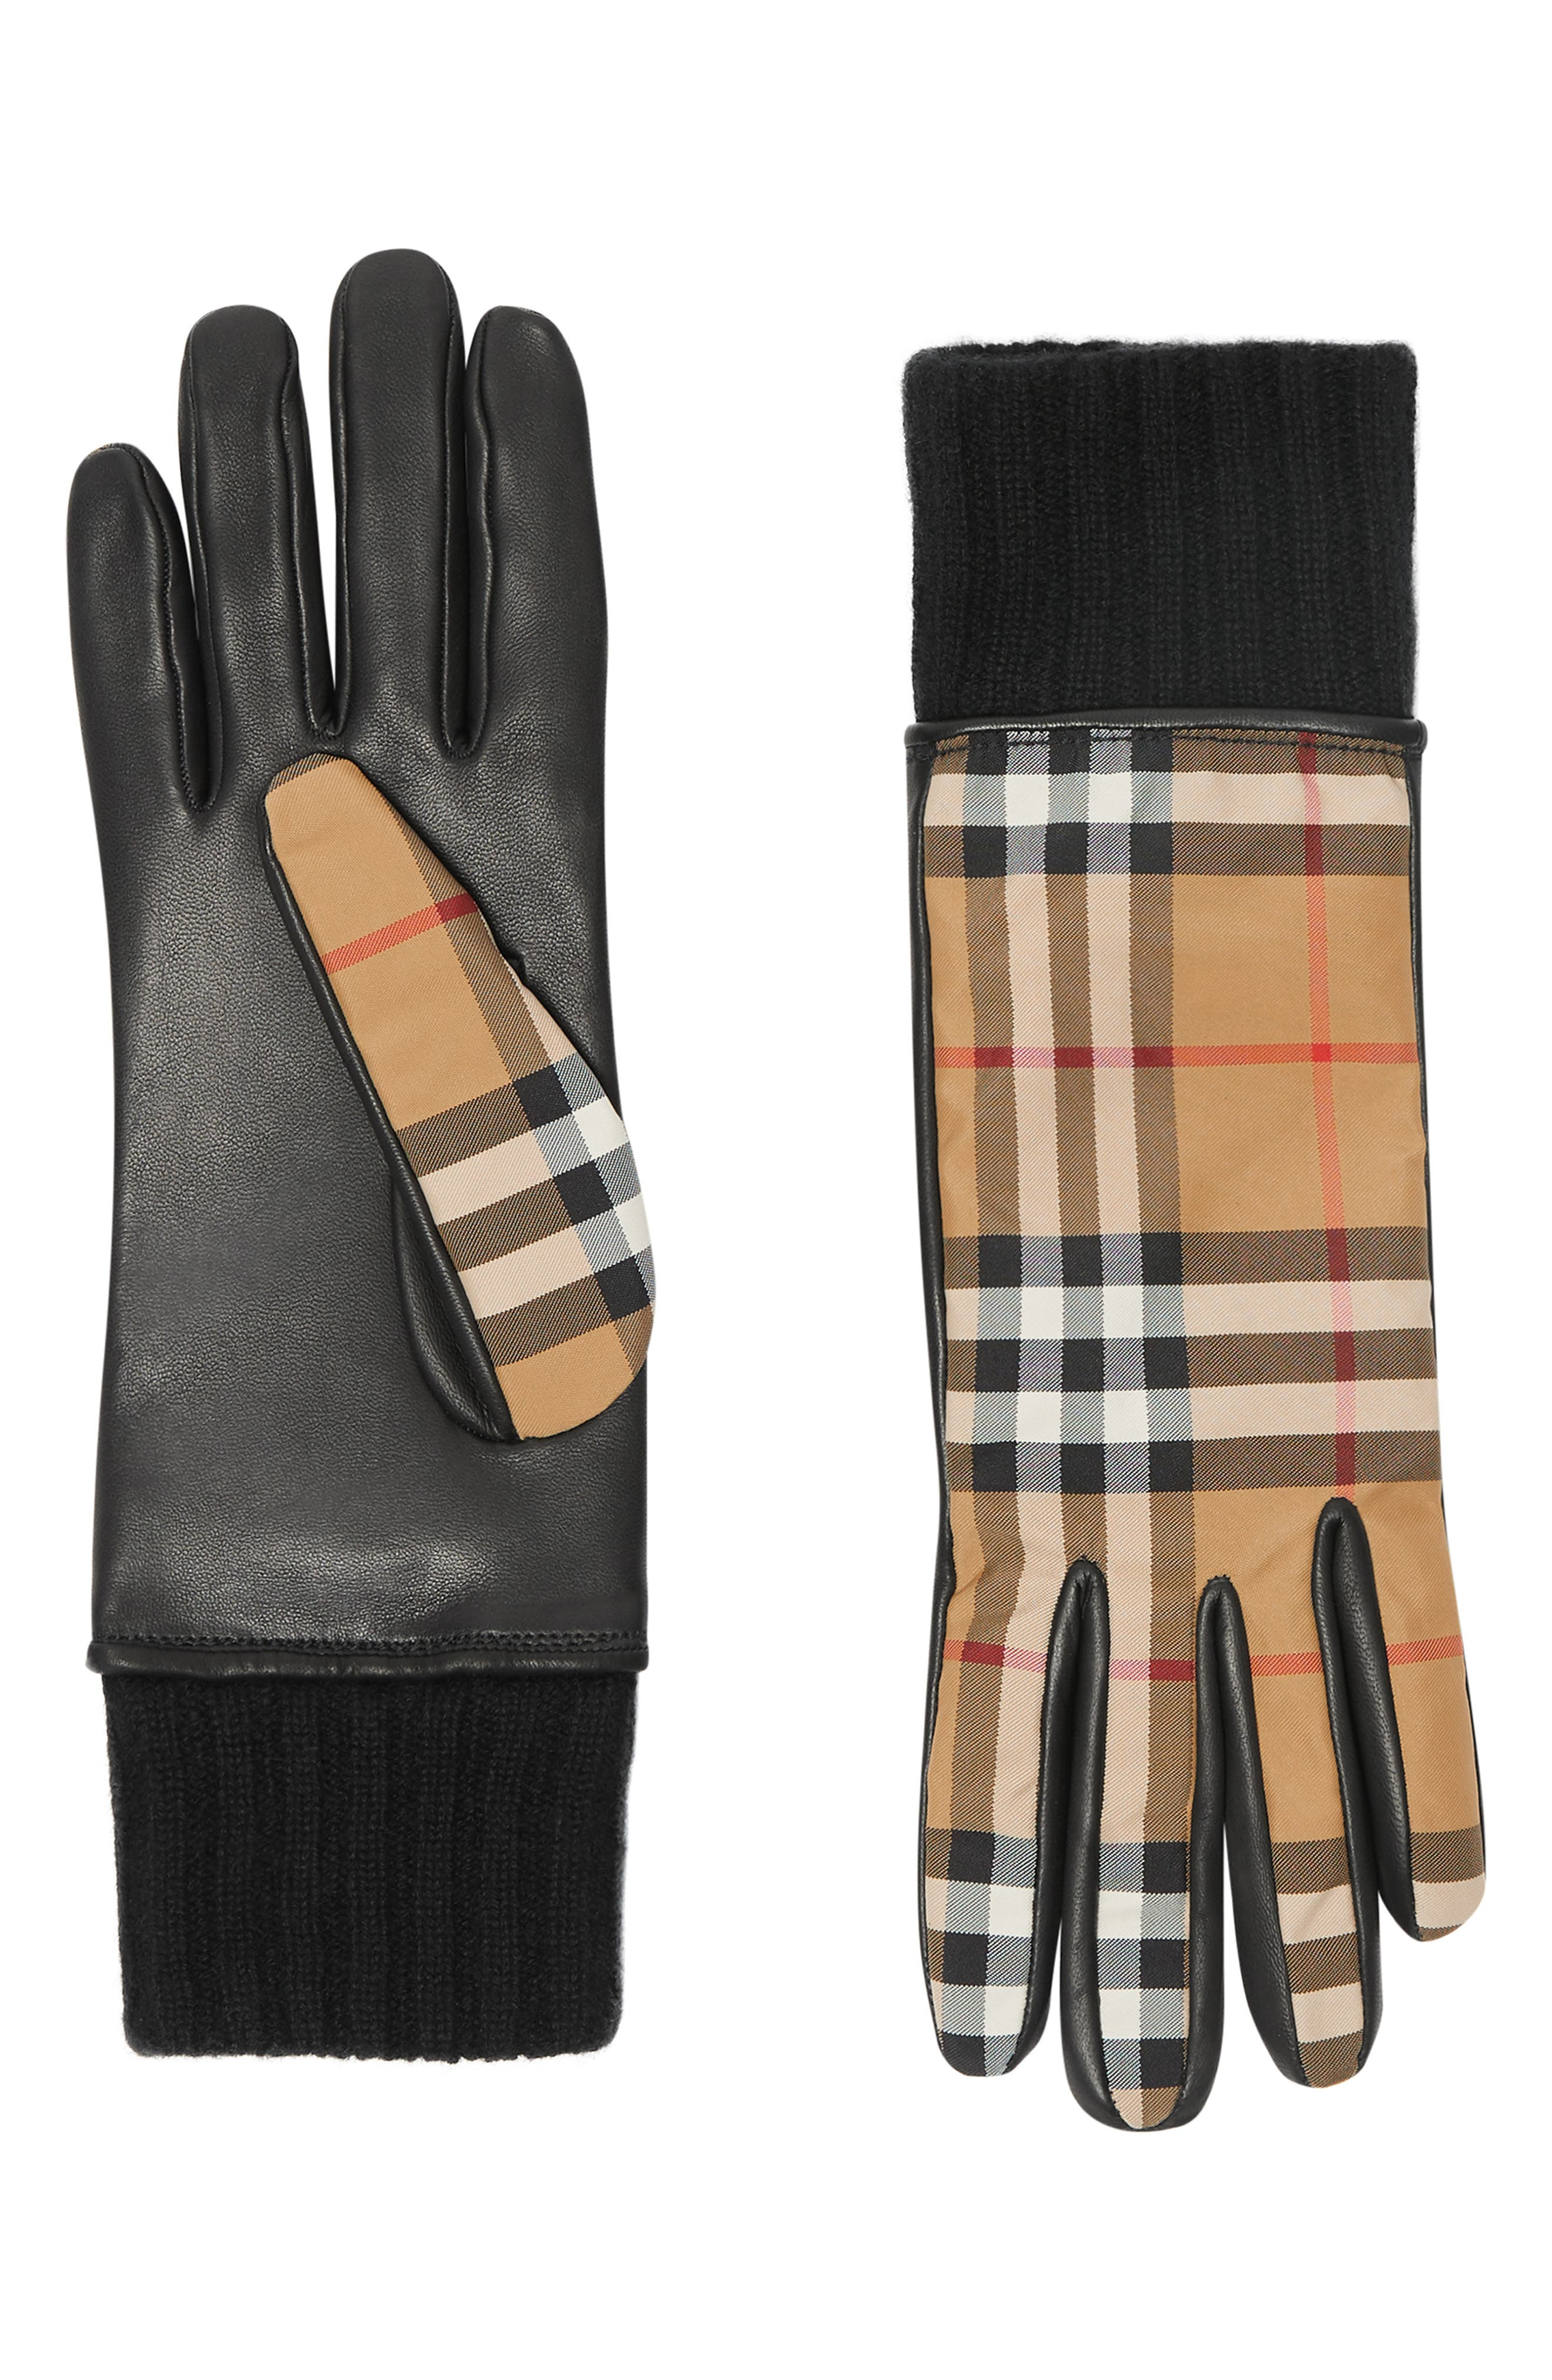 Burberry Cashmere Lined Vintage Check & Leather Gloves - Brown